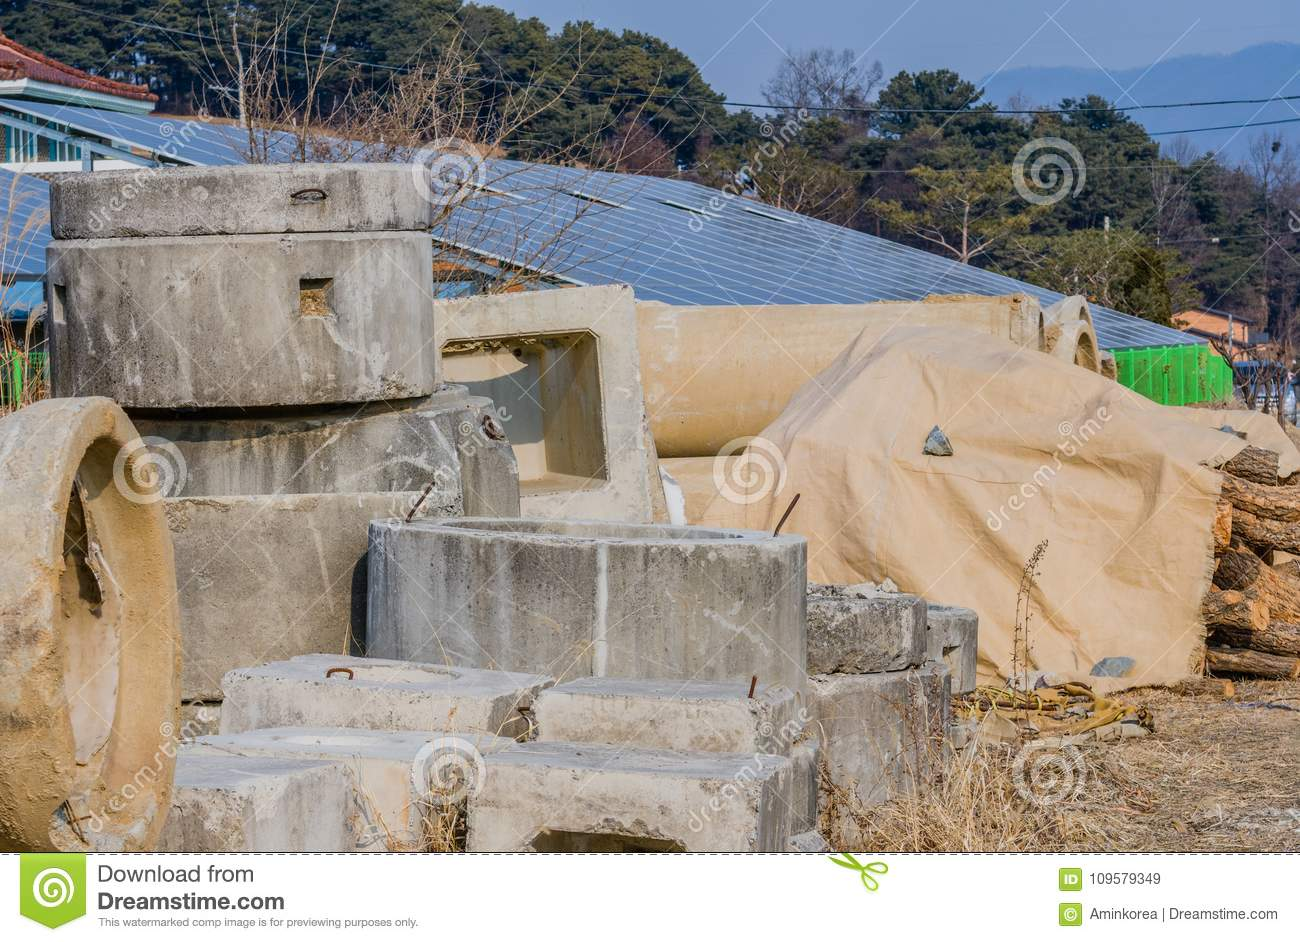 Precast Concrete Culvert Sections Stock Image - Image of blue